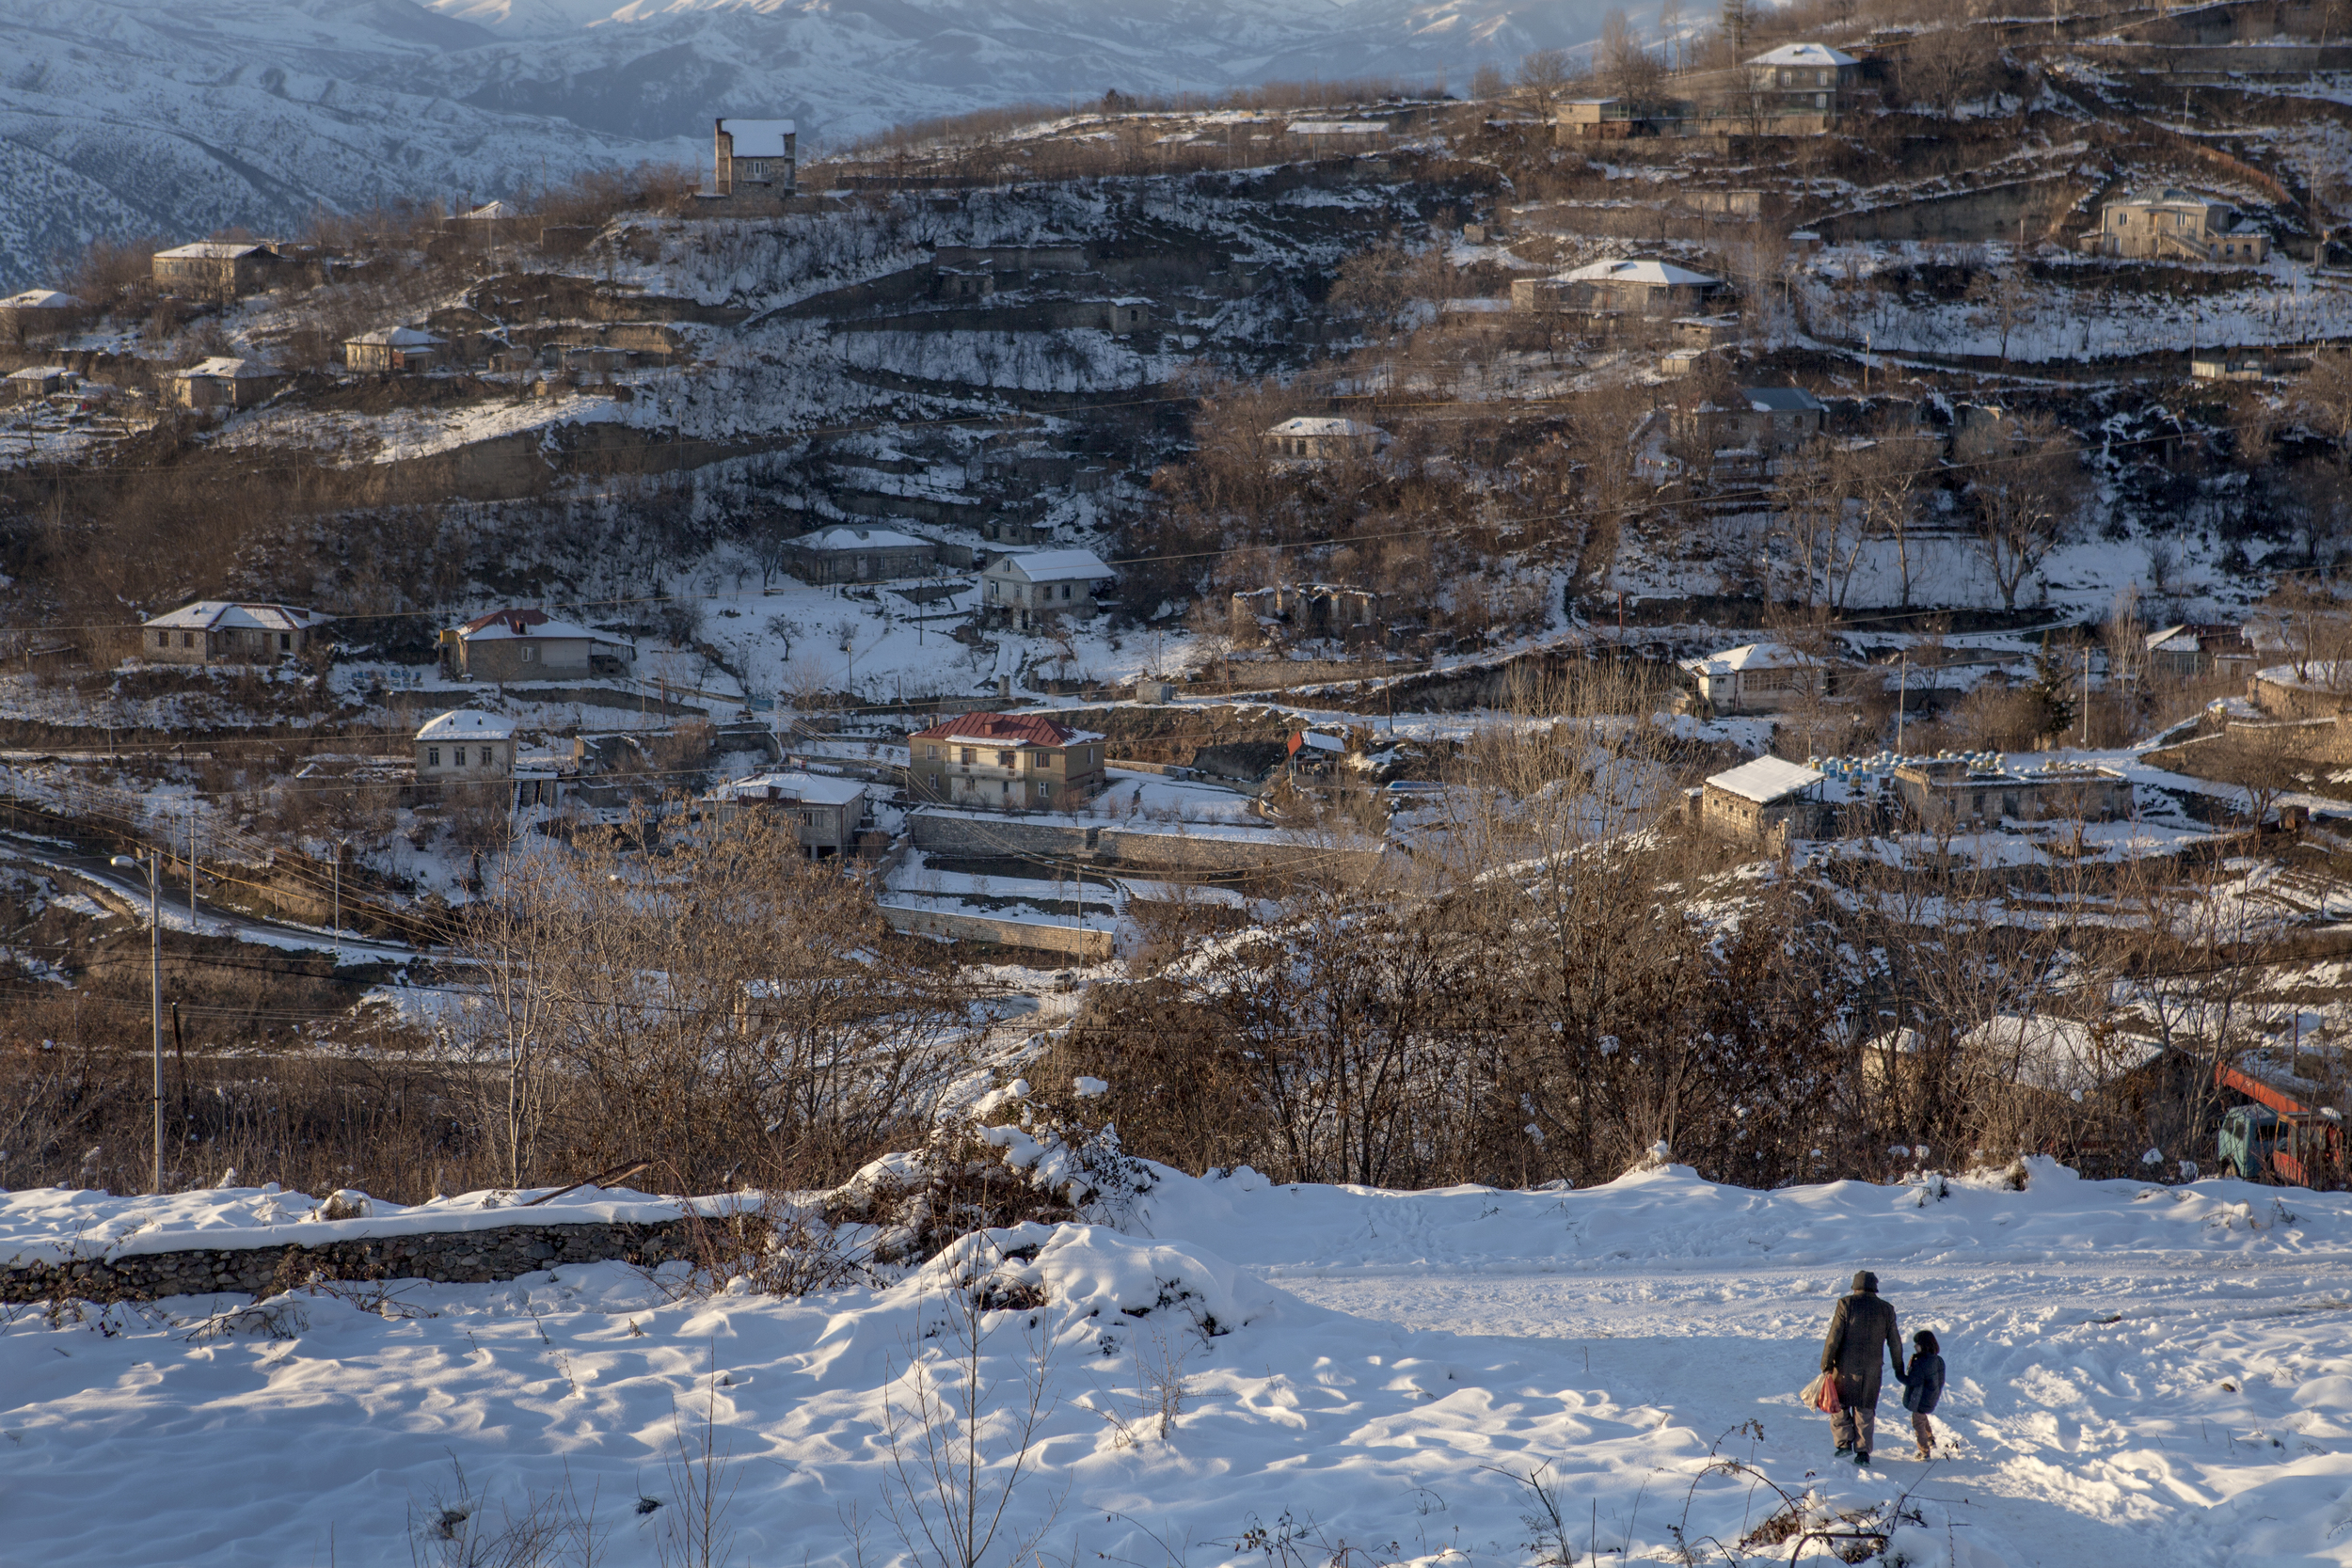 The majority try to find a way to Europe or the US, with a few who see moving to Armenia and neighboring Nagorno-Karabakh as an opportunity to settle in their homeland.Syria's three year civil war has resulted in more than 2.5 million refugees.